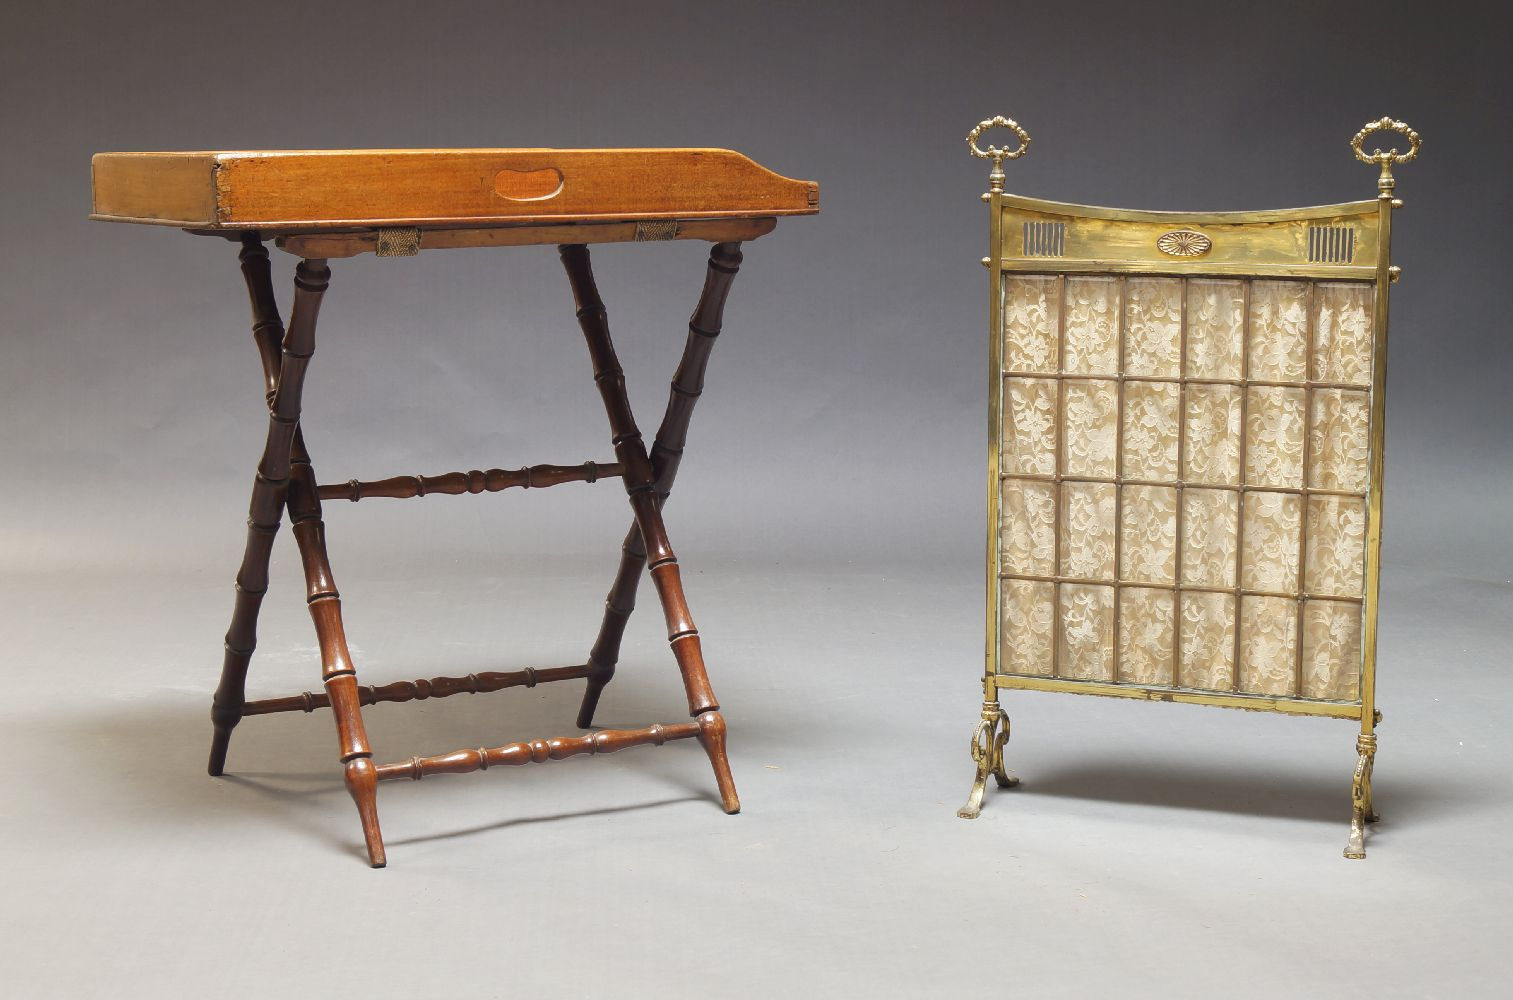 A mahogany butlers tray, 19th Century, the rectangular tray with pierced handles, on folding